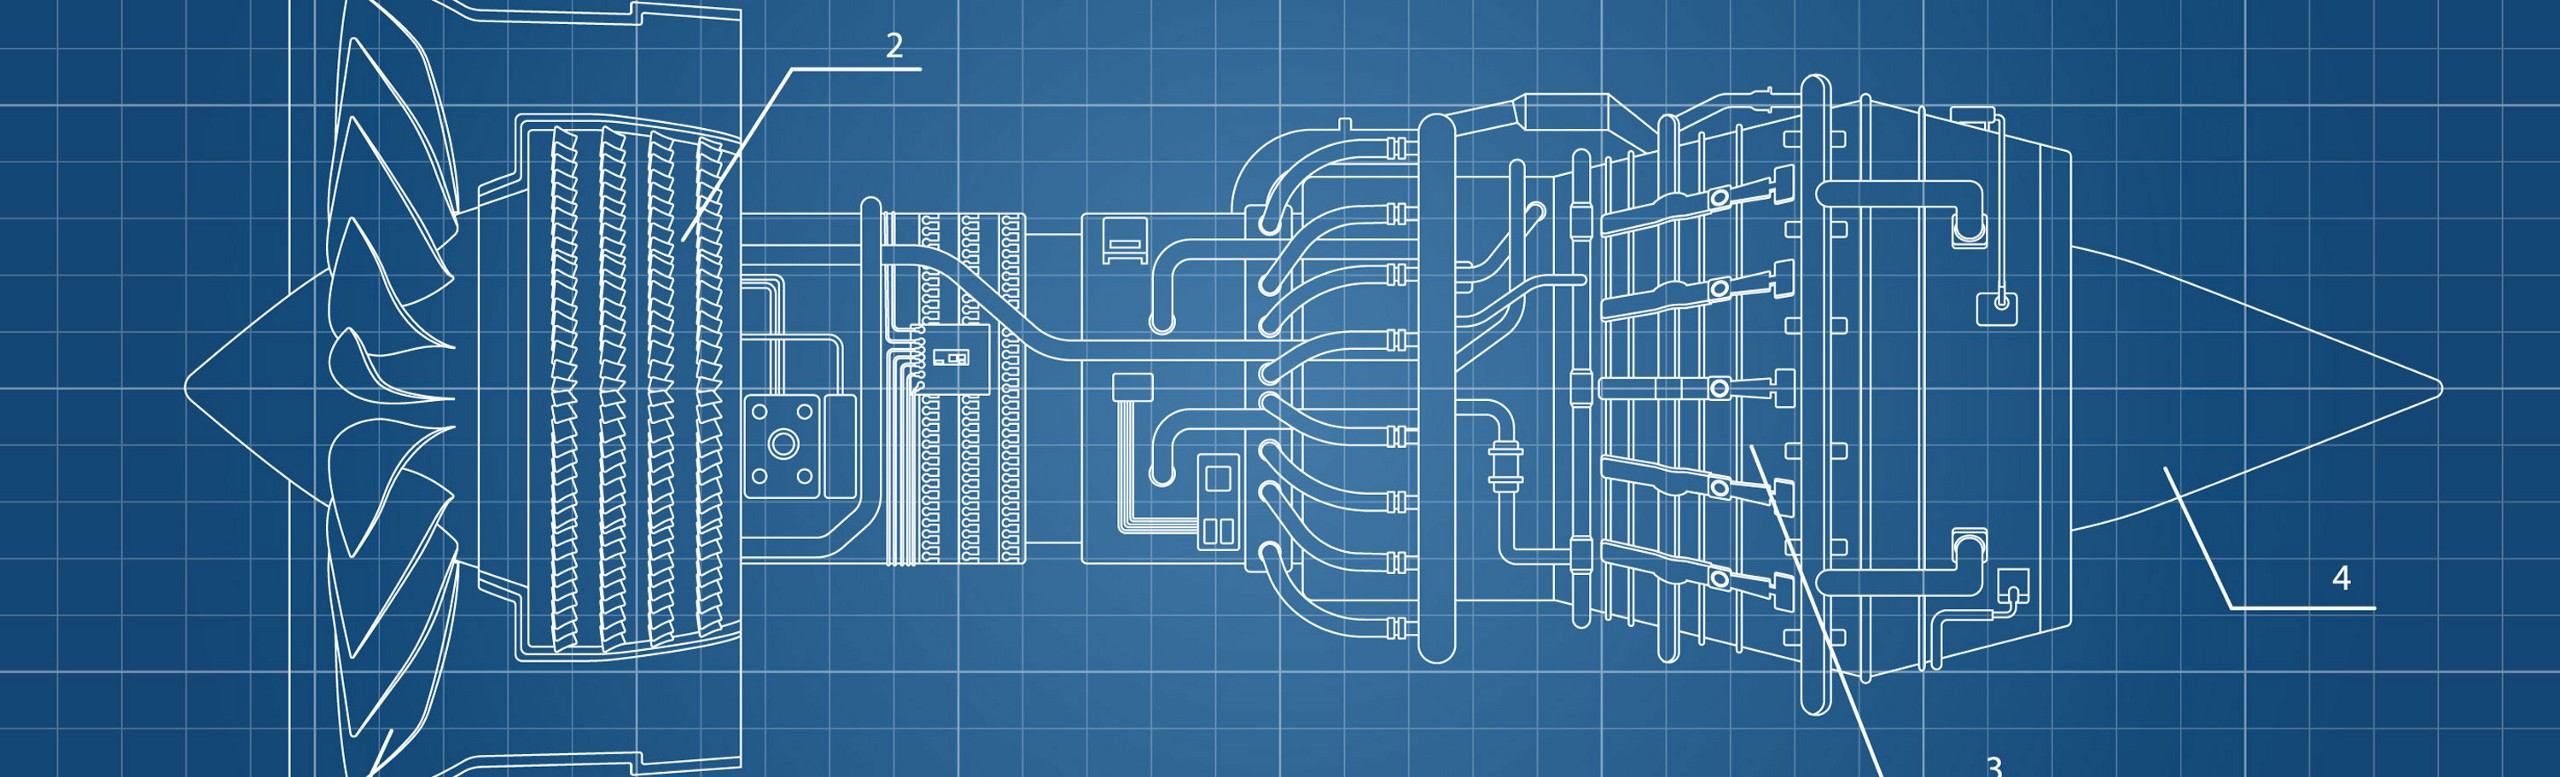 Image credit: [shaineast](https://stock.adobe.com/stock-photo/jet-engine-in-a-outline-style-industrial-vector-blueprint-part-of-the-aircraft-side-view-vector-illustration/163248356?prev_url=detail)